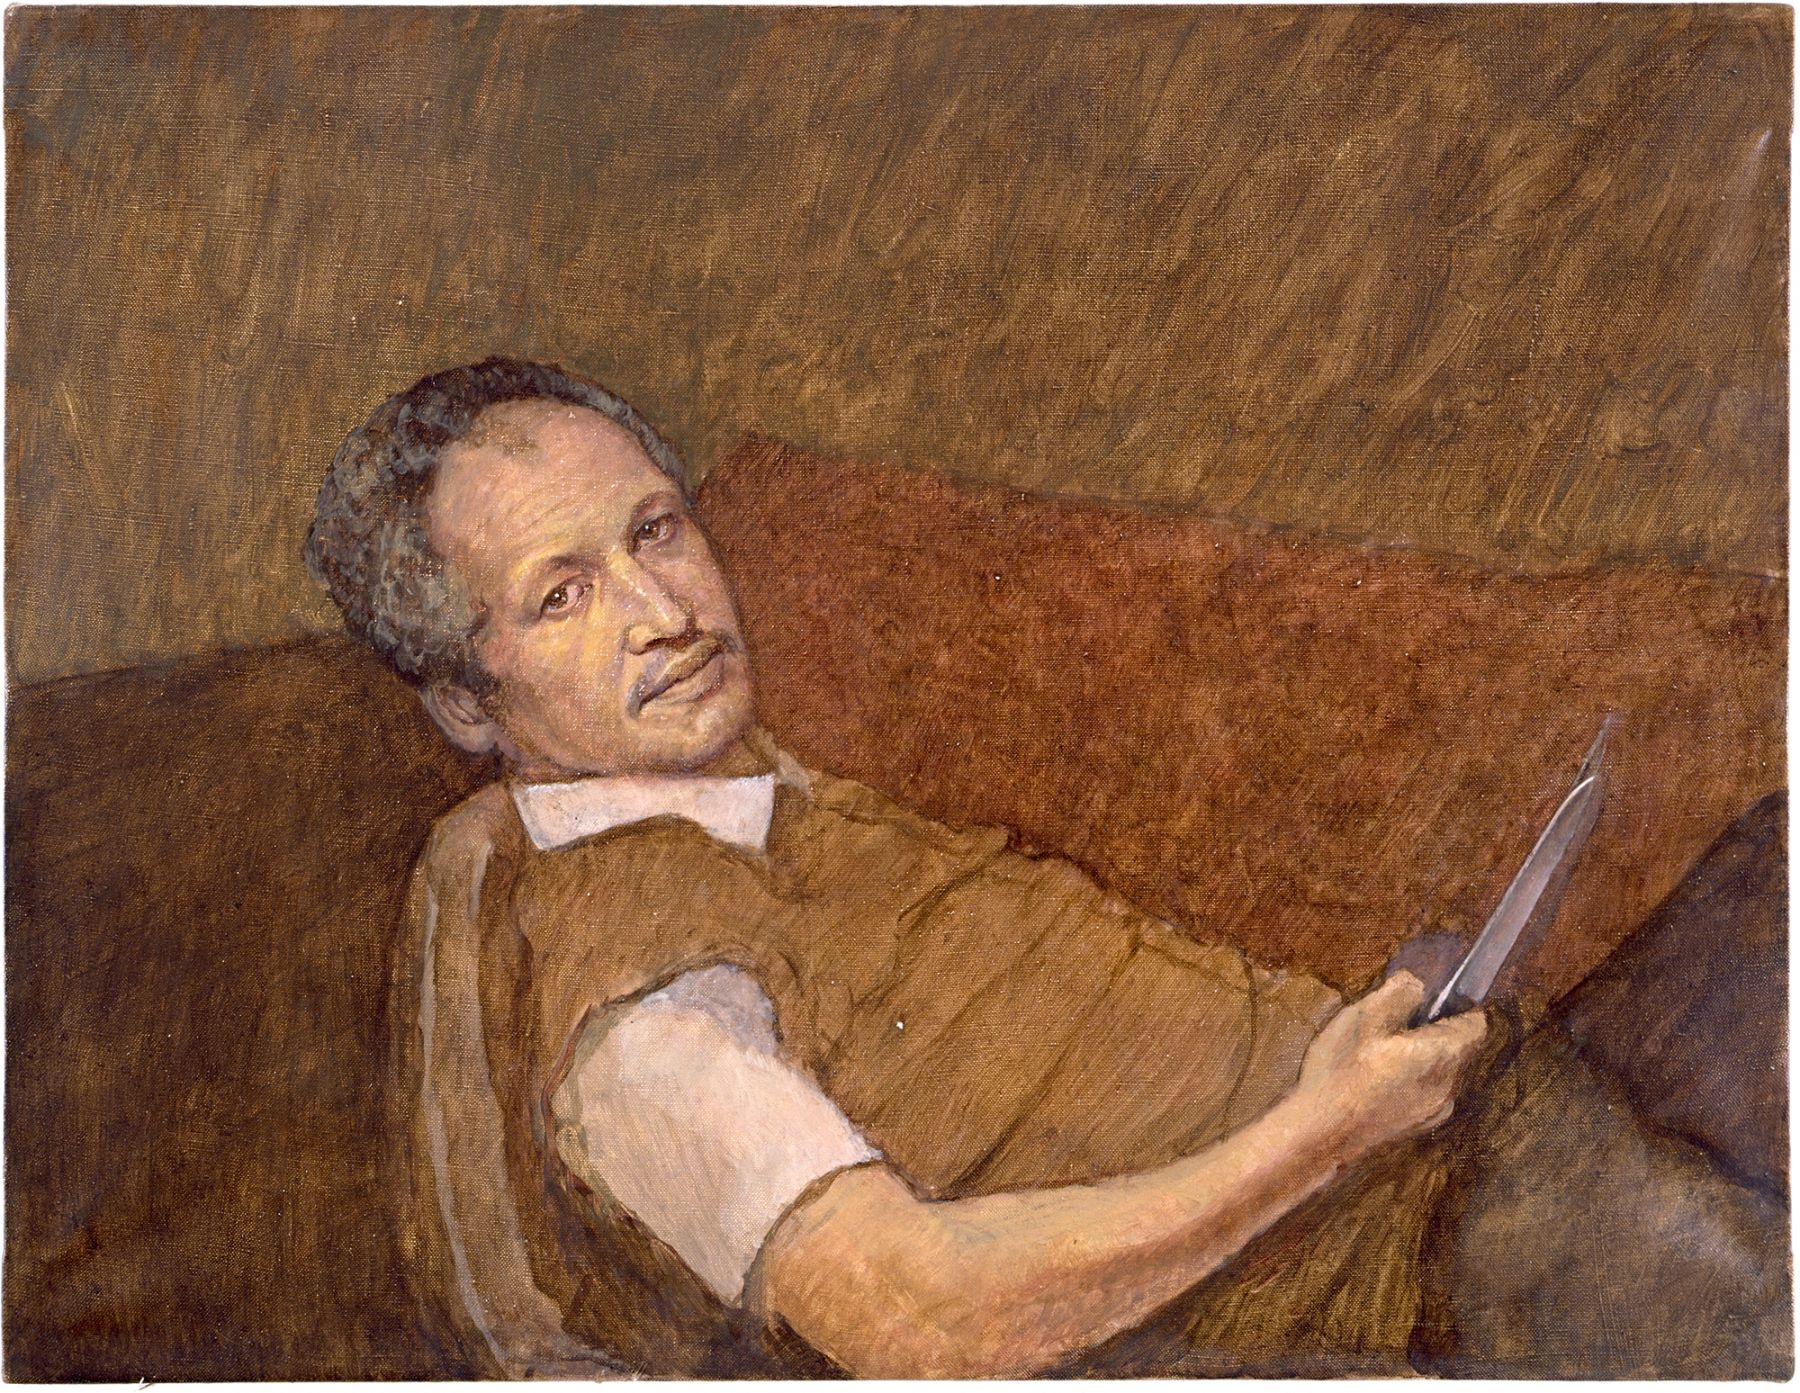 Portrait of the Avant-Garde (Mark Rothko Committing Suicide), 2006, Oil on linen, 26 x 30 inches